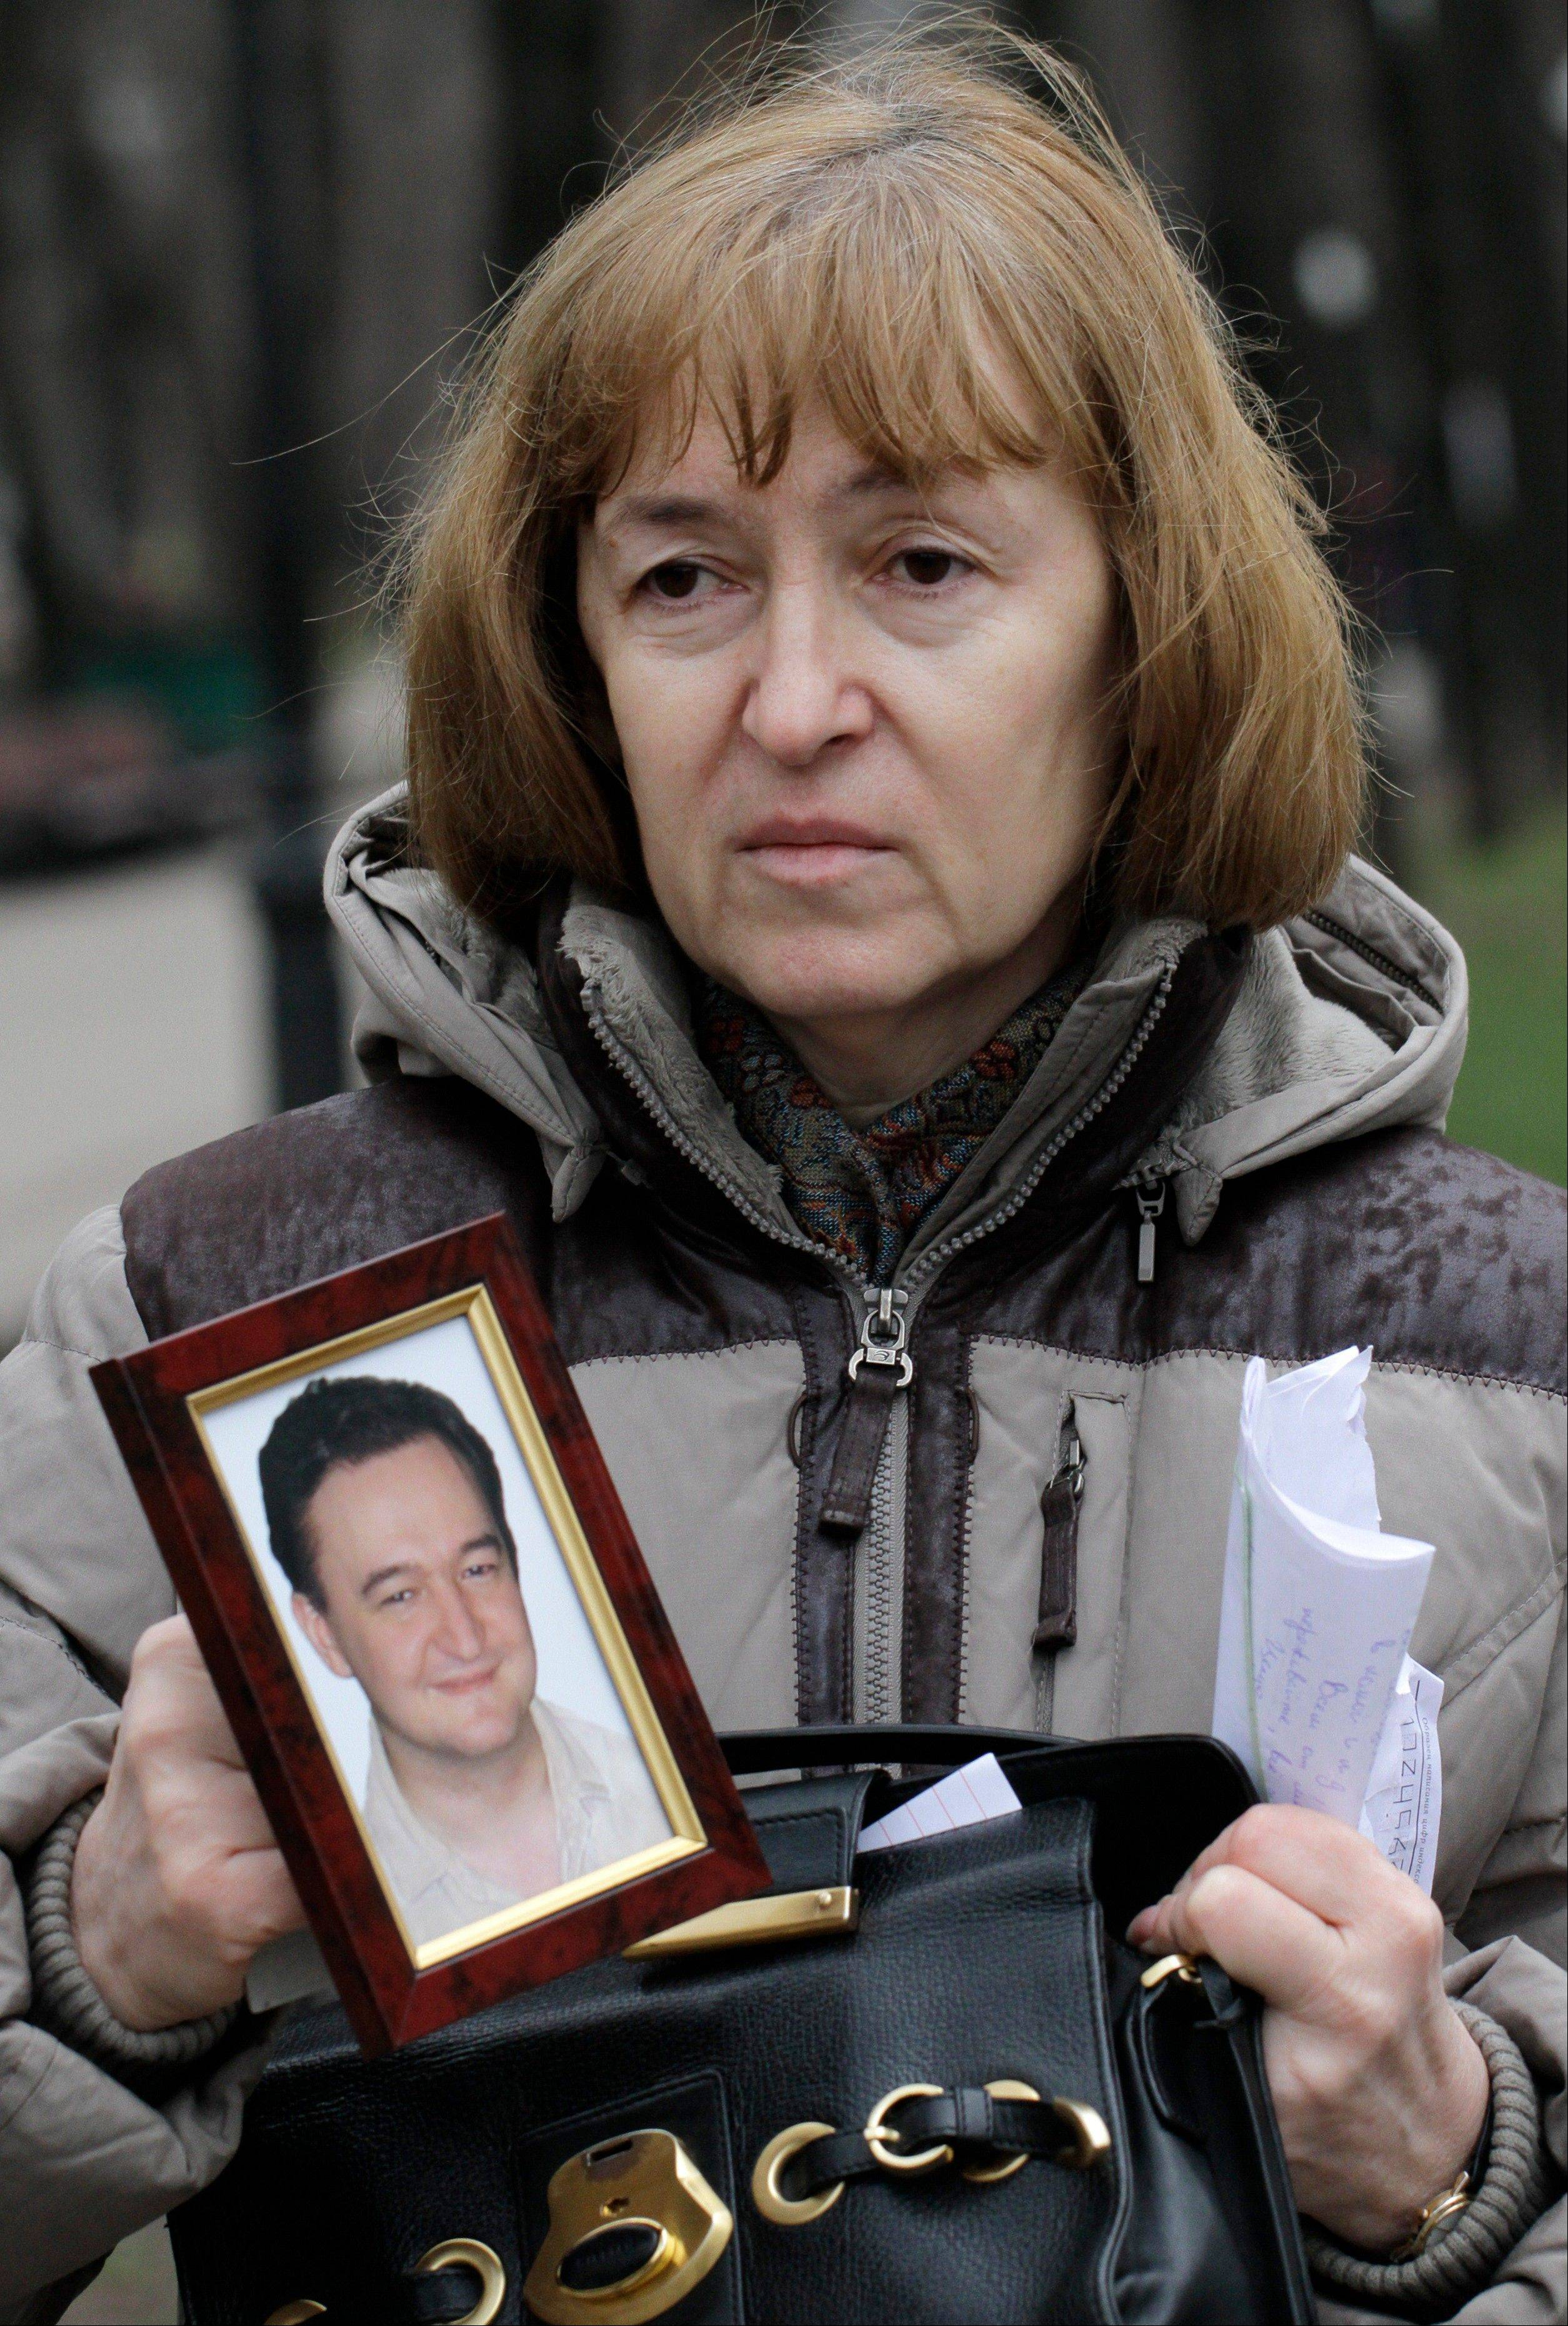 Nataliya Magnitskaya, mother of lawyer Sergei Magnitsky who died in jail, holds a photo of her son. While U.S. lawmakers are voting to open up trade with the country, human rights remain a sticking point in relations.